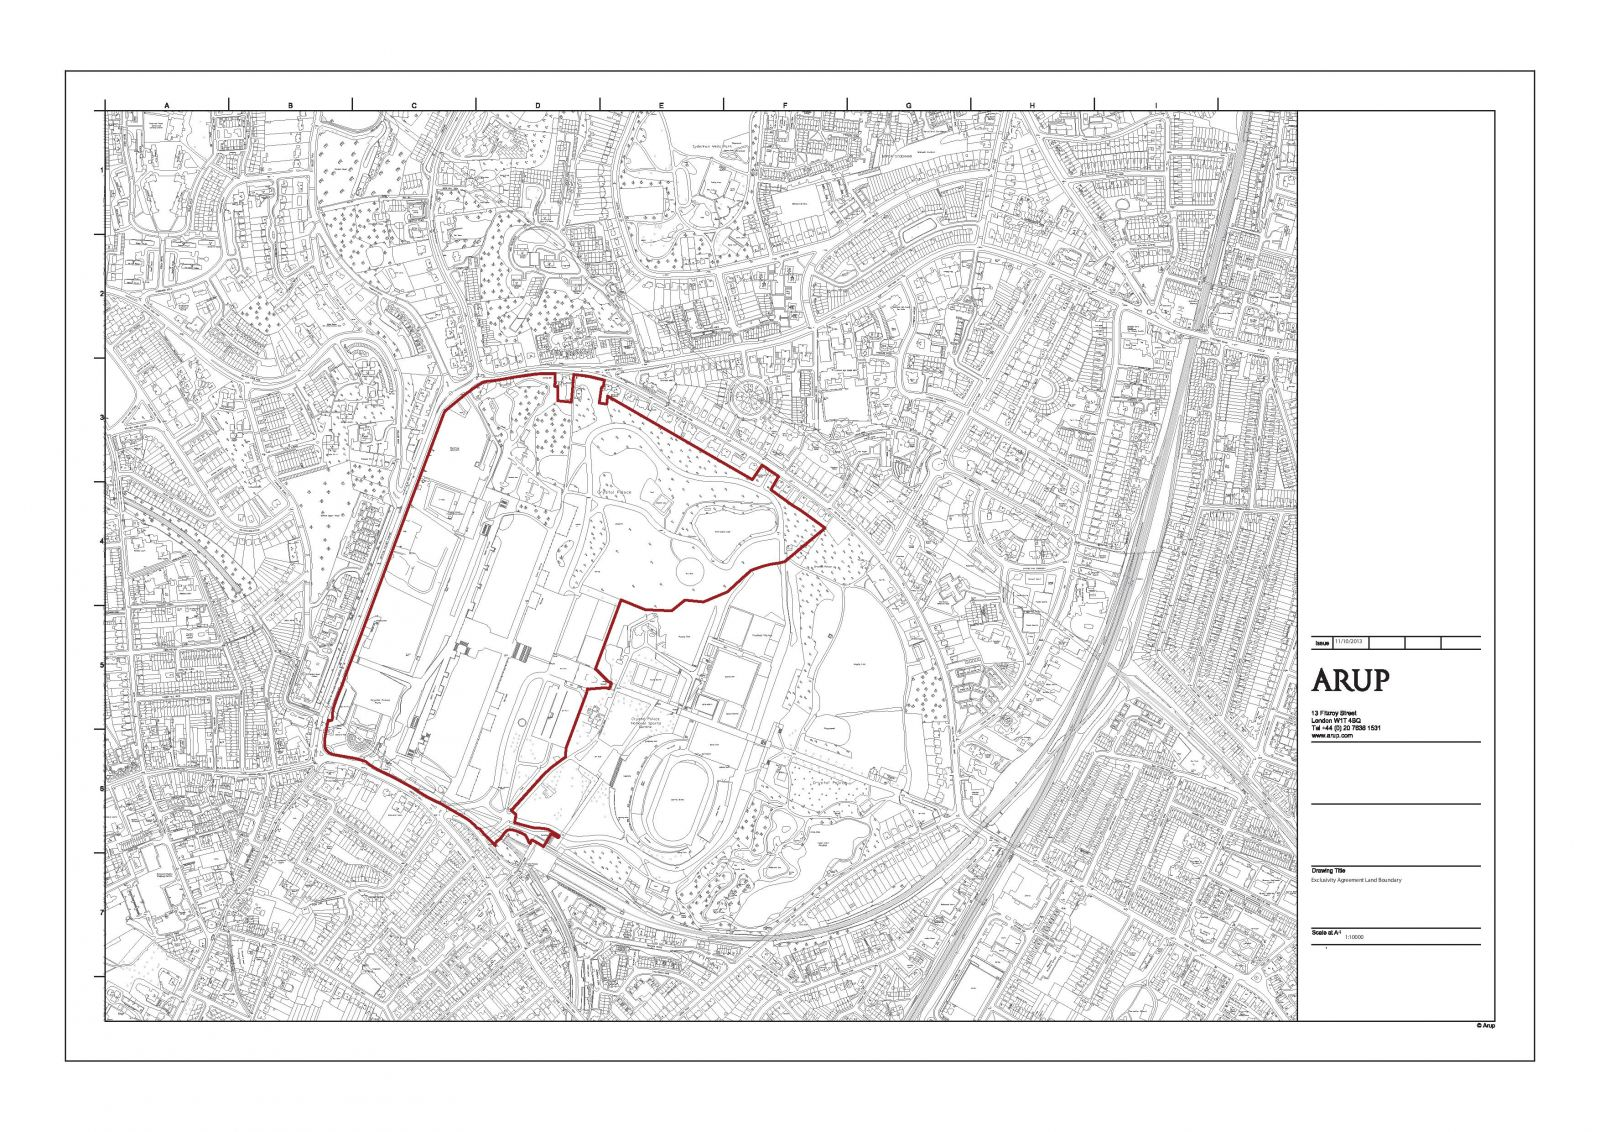 Exclusivity Agreement Area Plan